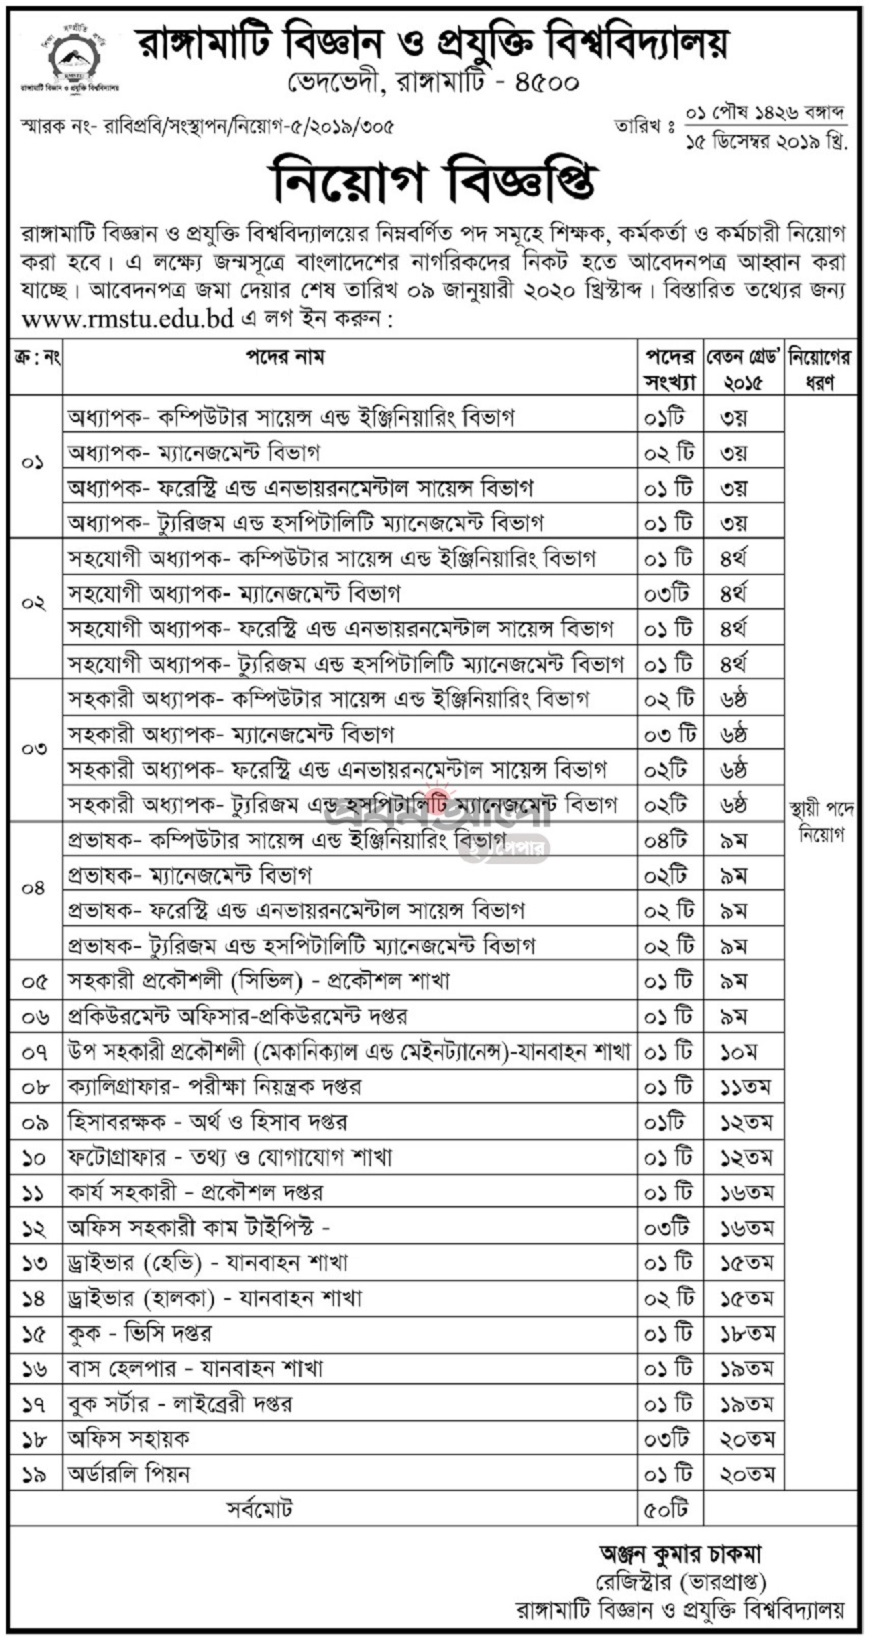 Rangamati Science and Technology University Job Circular 2020